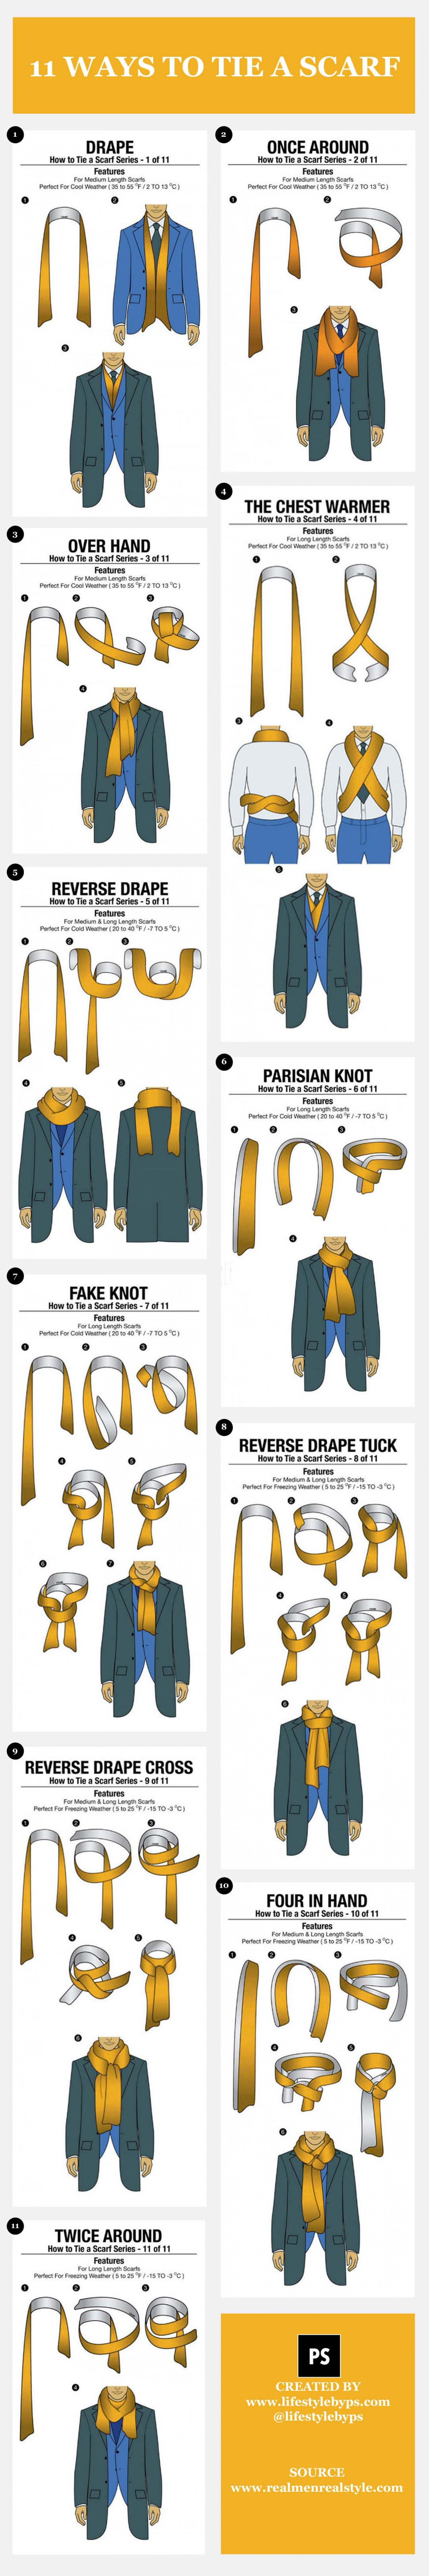 06 11-simple-ways-to-tie-a-scarf_52c9669e796c4_w1500